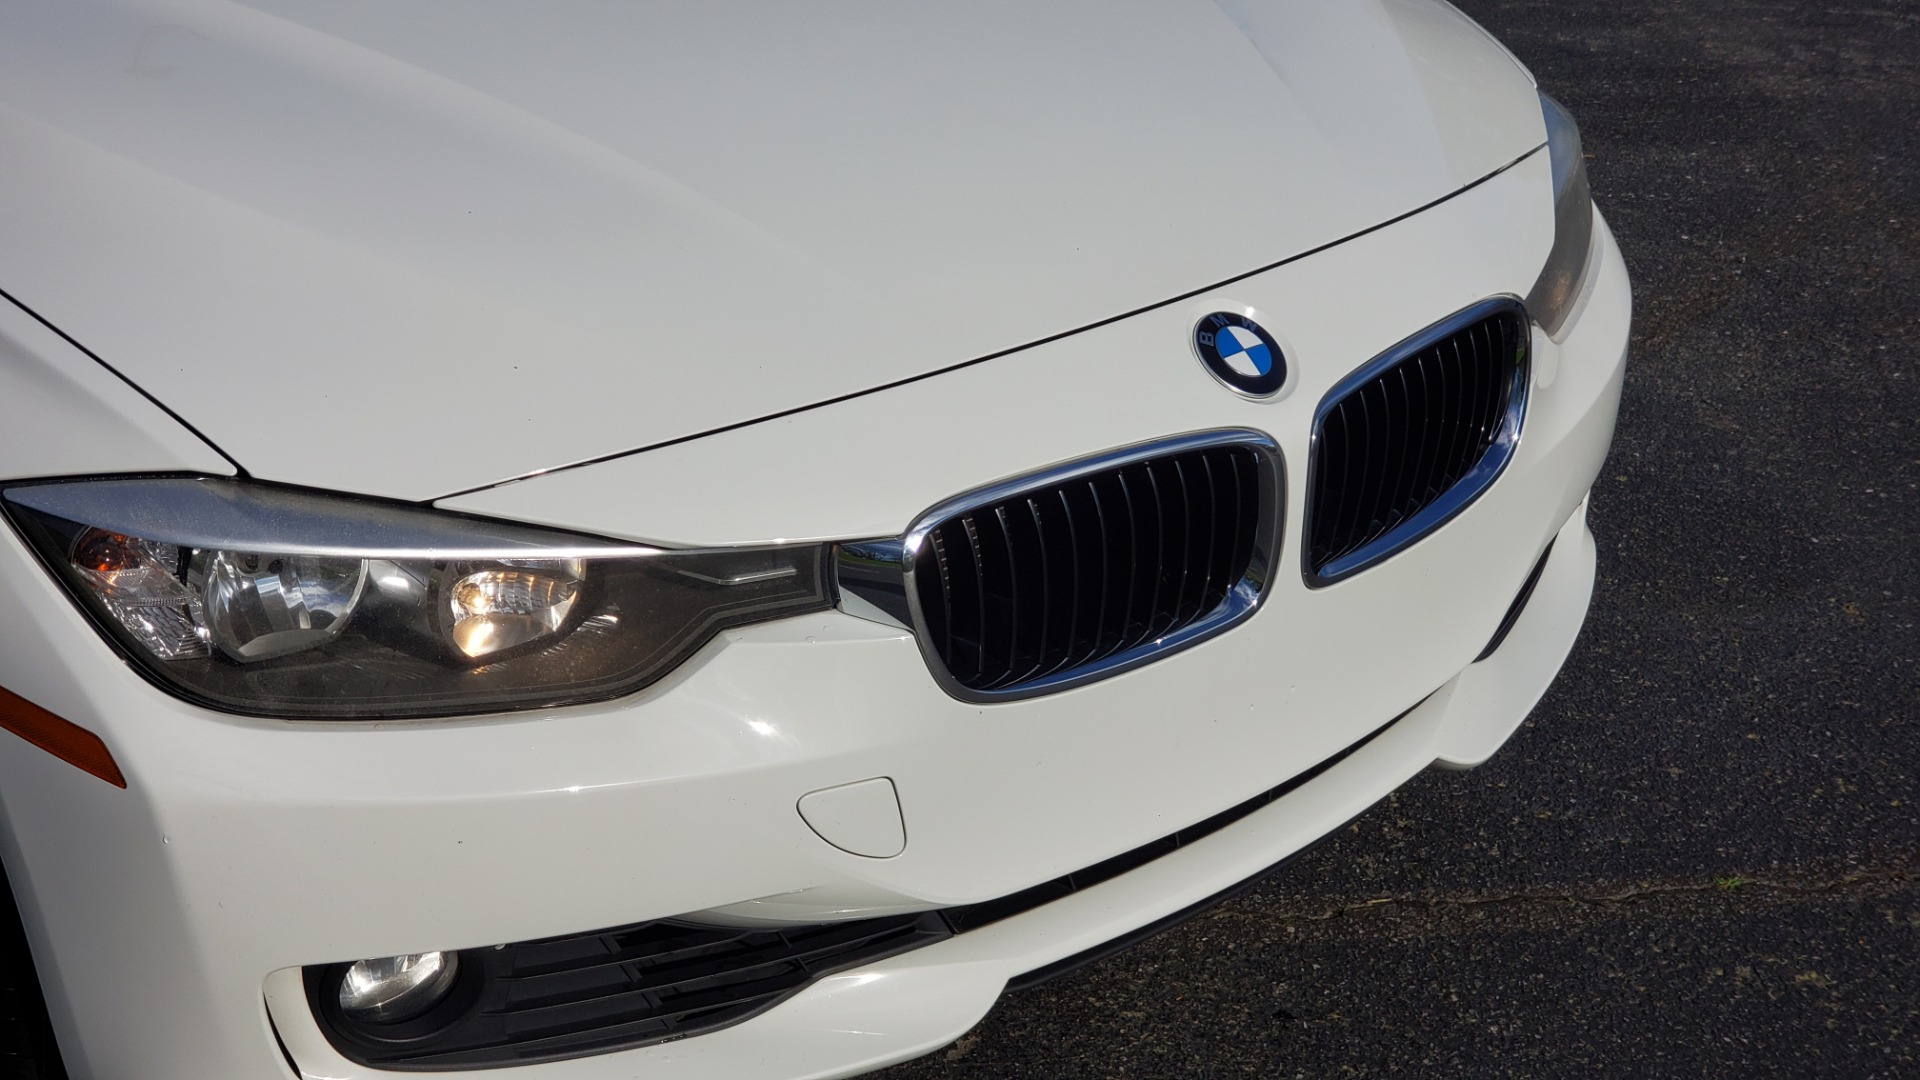 Used 2013 BMW 3 SERIES 328I PREMIUM / SUNROOF / COMFORT ACCESS KEY / SAT RADIO for sale Sold at Formula Imports in Charlotte NC 28227 21